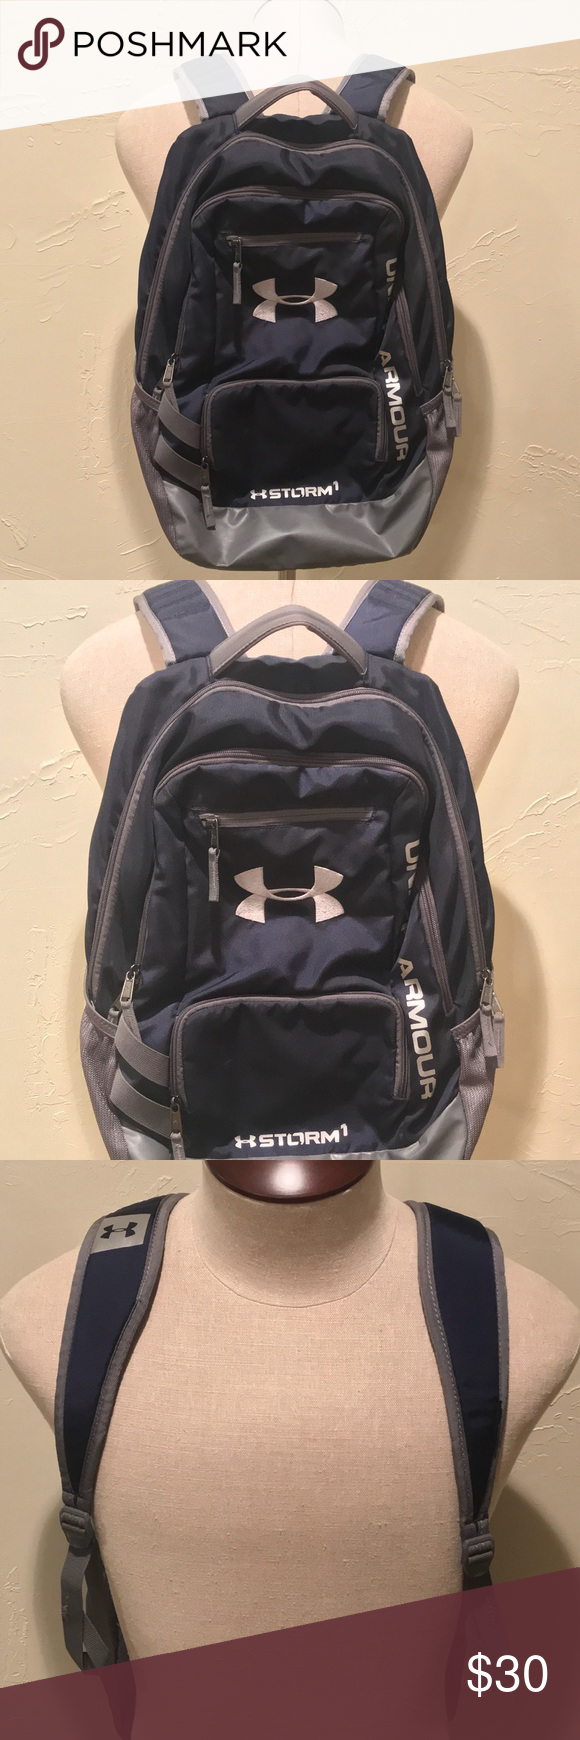 Under Armour Storm1 Heat Gear Backpack Navy Blue Under Armour UA Storm1  Heat Gear Backpack Navy Midnight Blue Under Armour Bags Backpacks 7481eb6efb